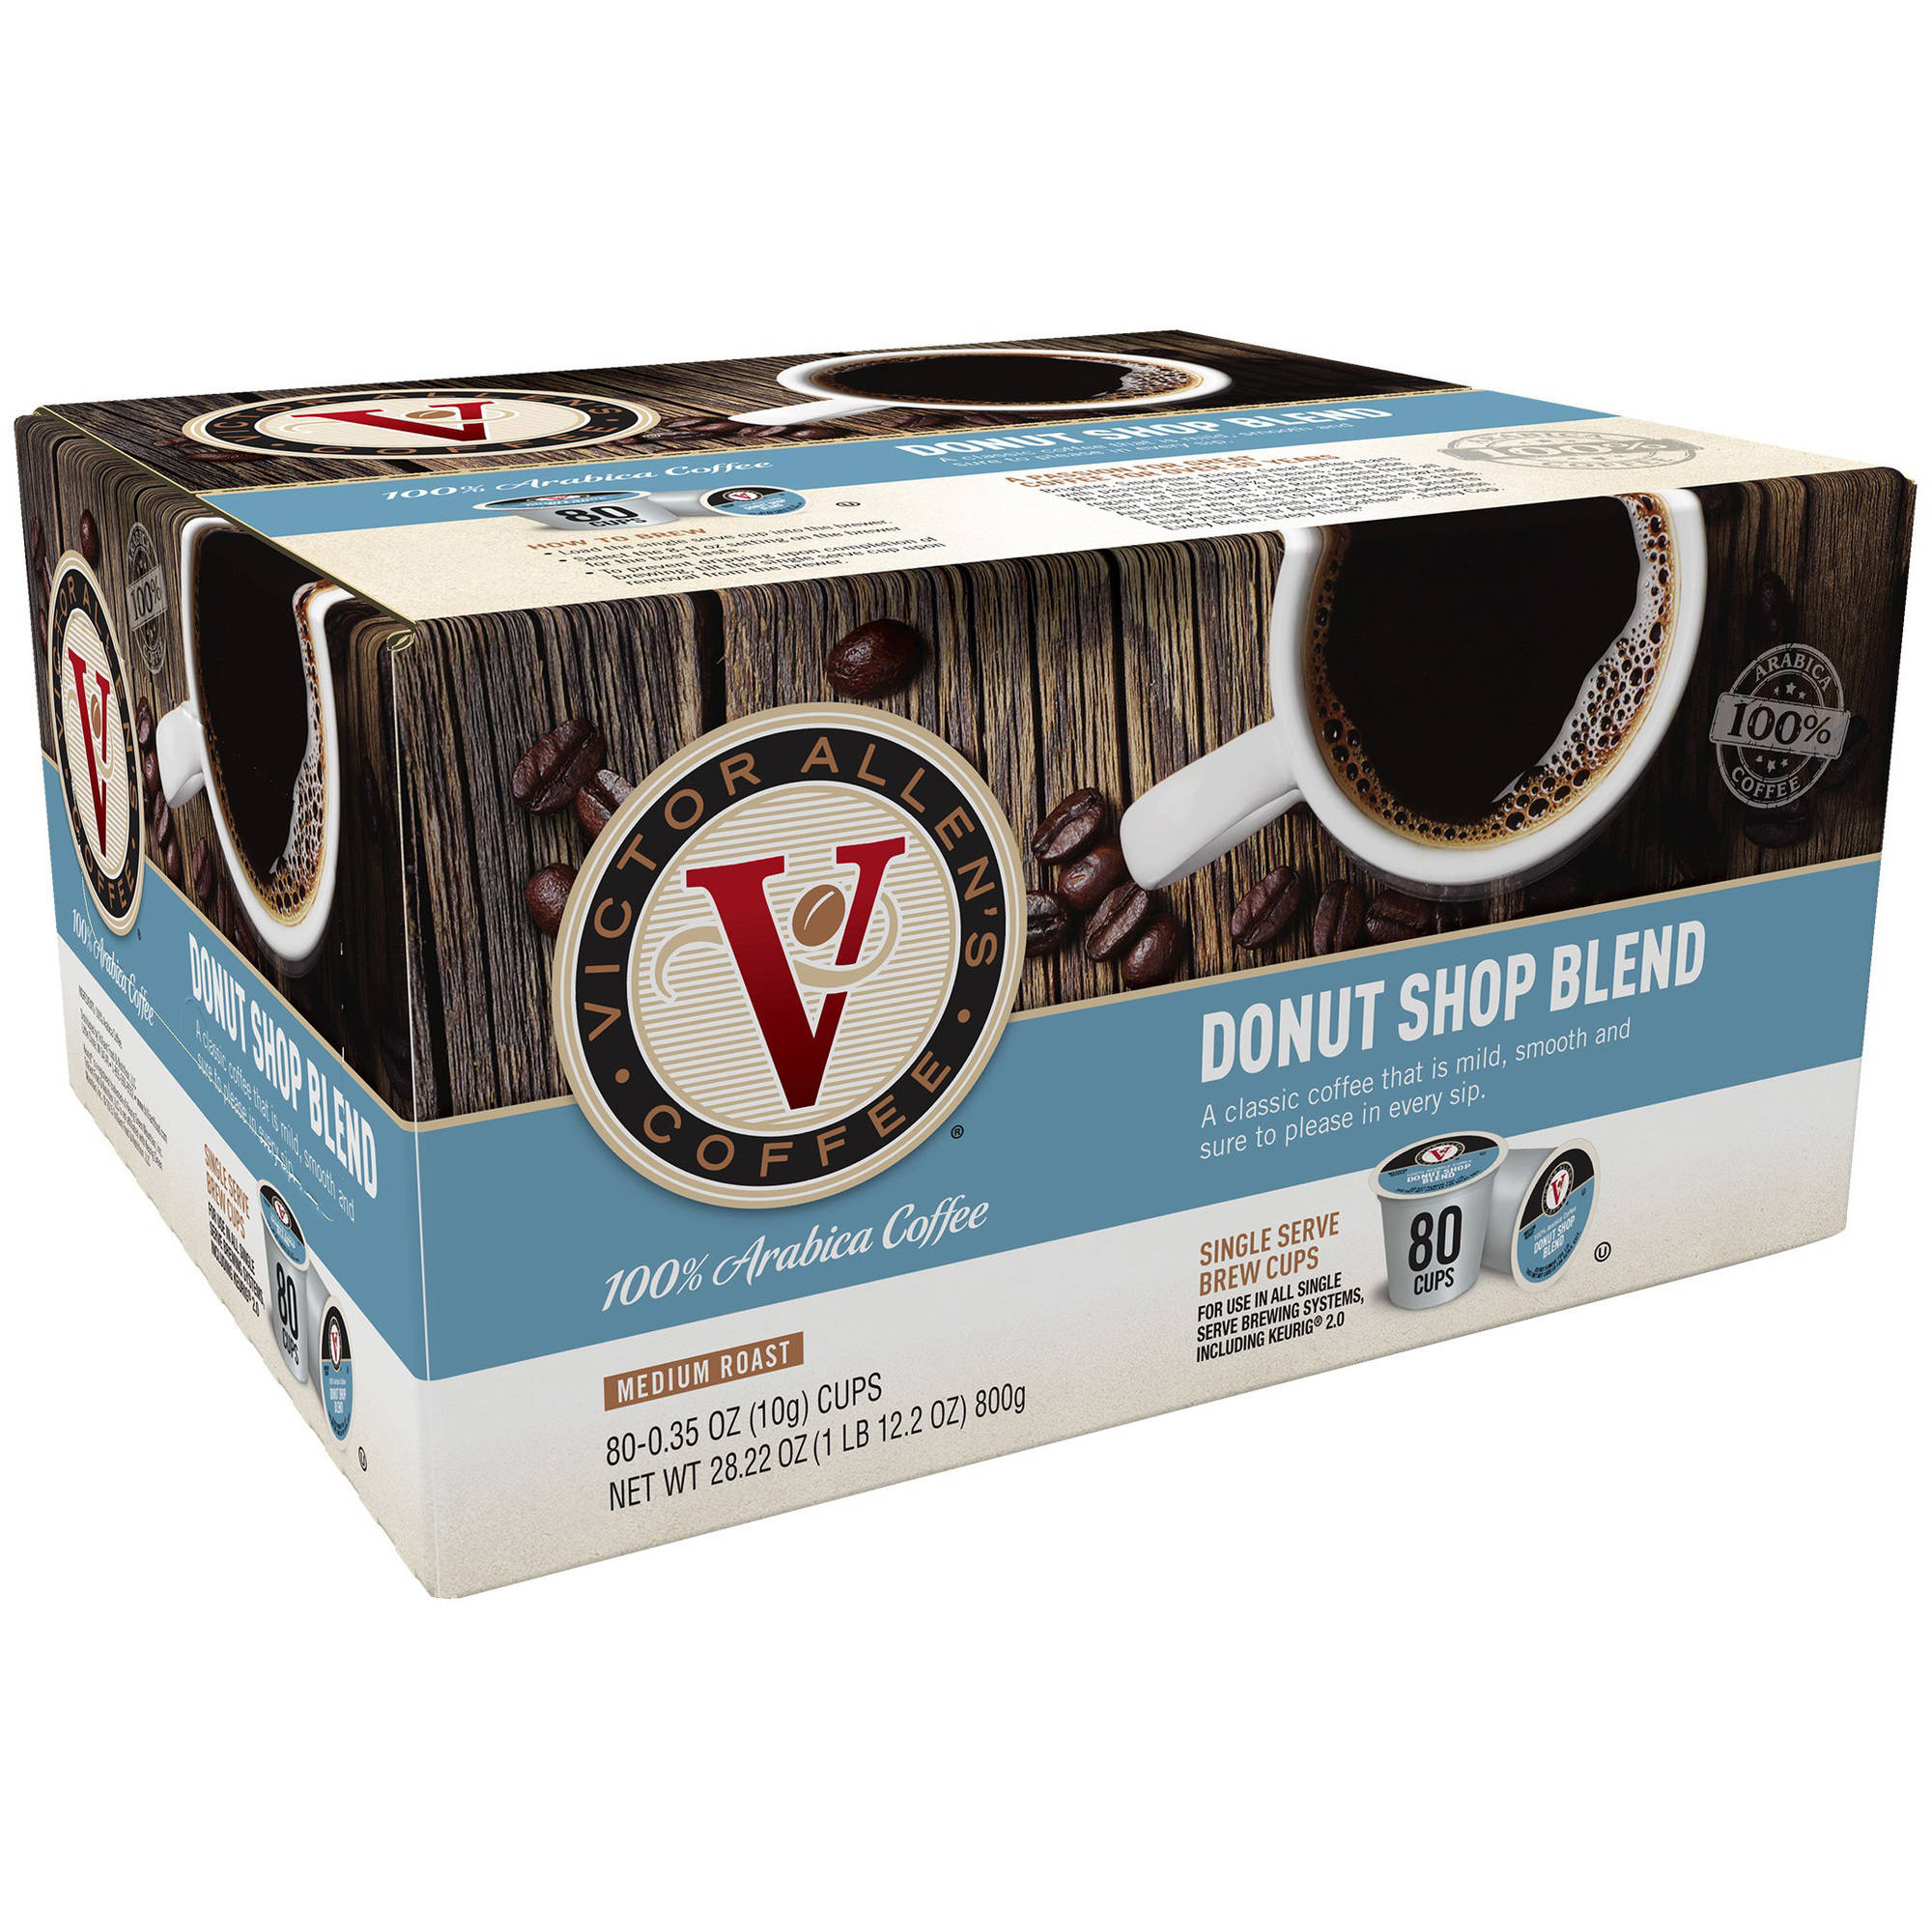 Victor Allen's Coffee Donut Shop Blend Medium Roast Single Serve Brew Cups, 0.35 oz, 80 count